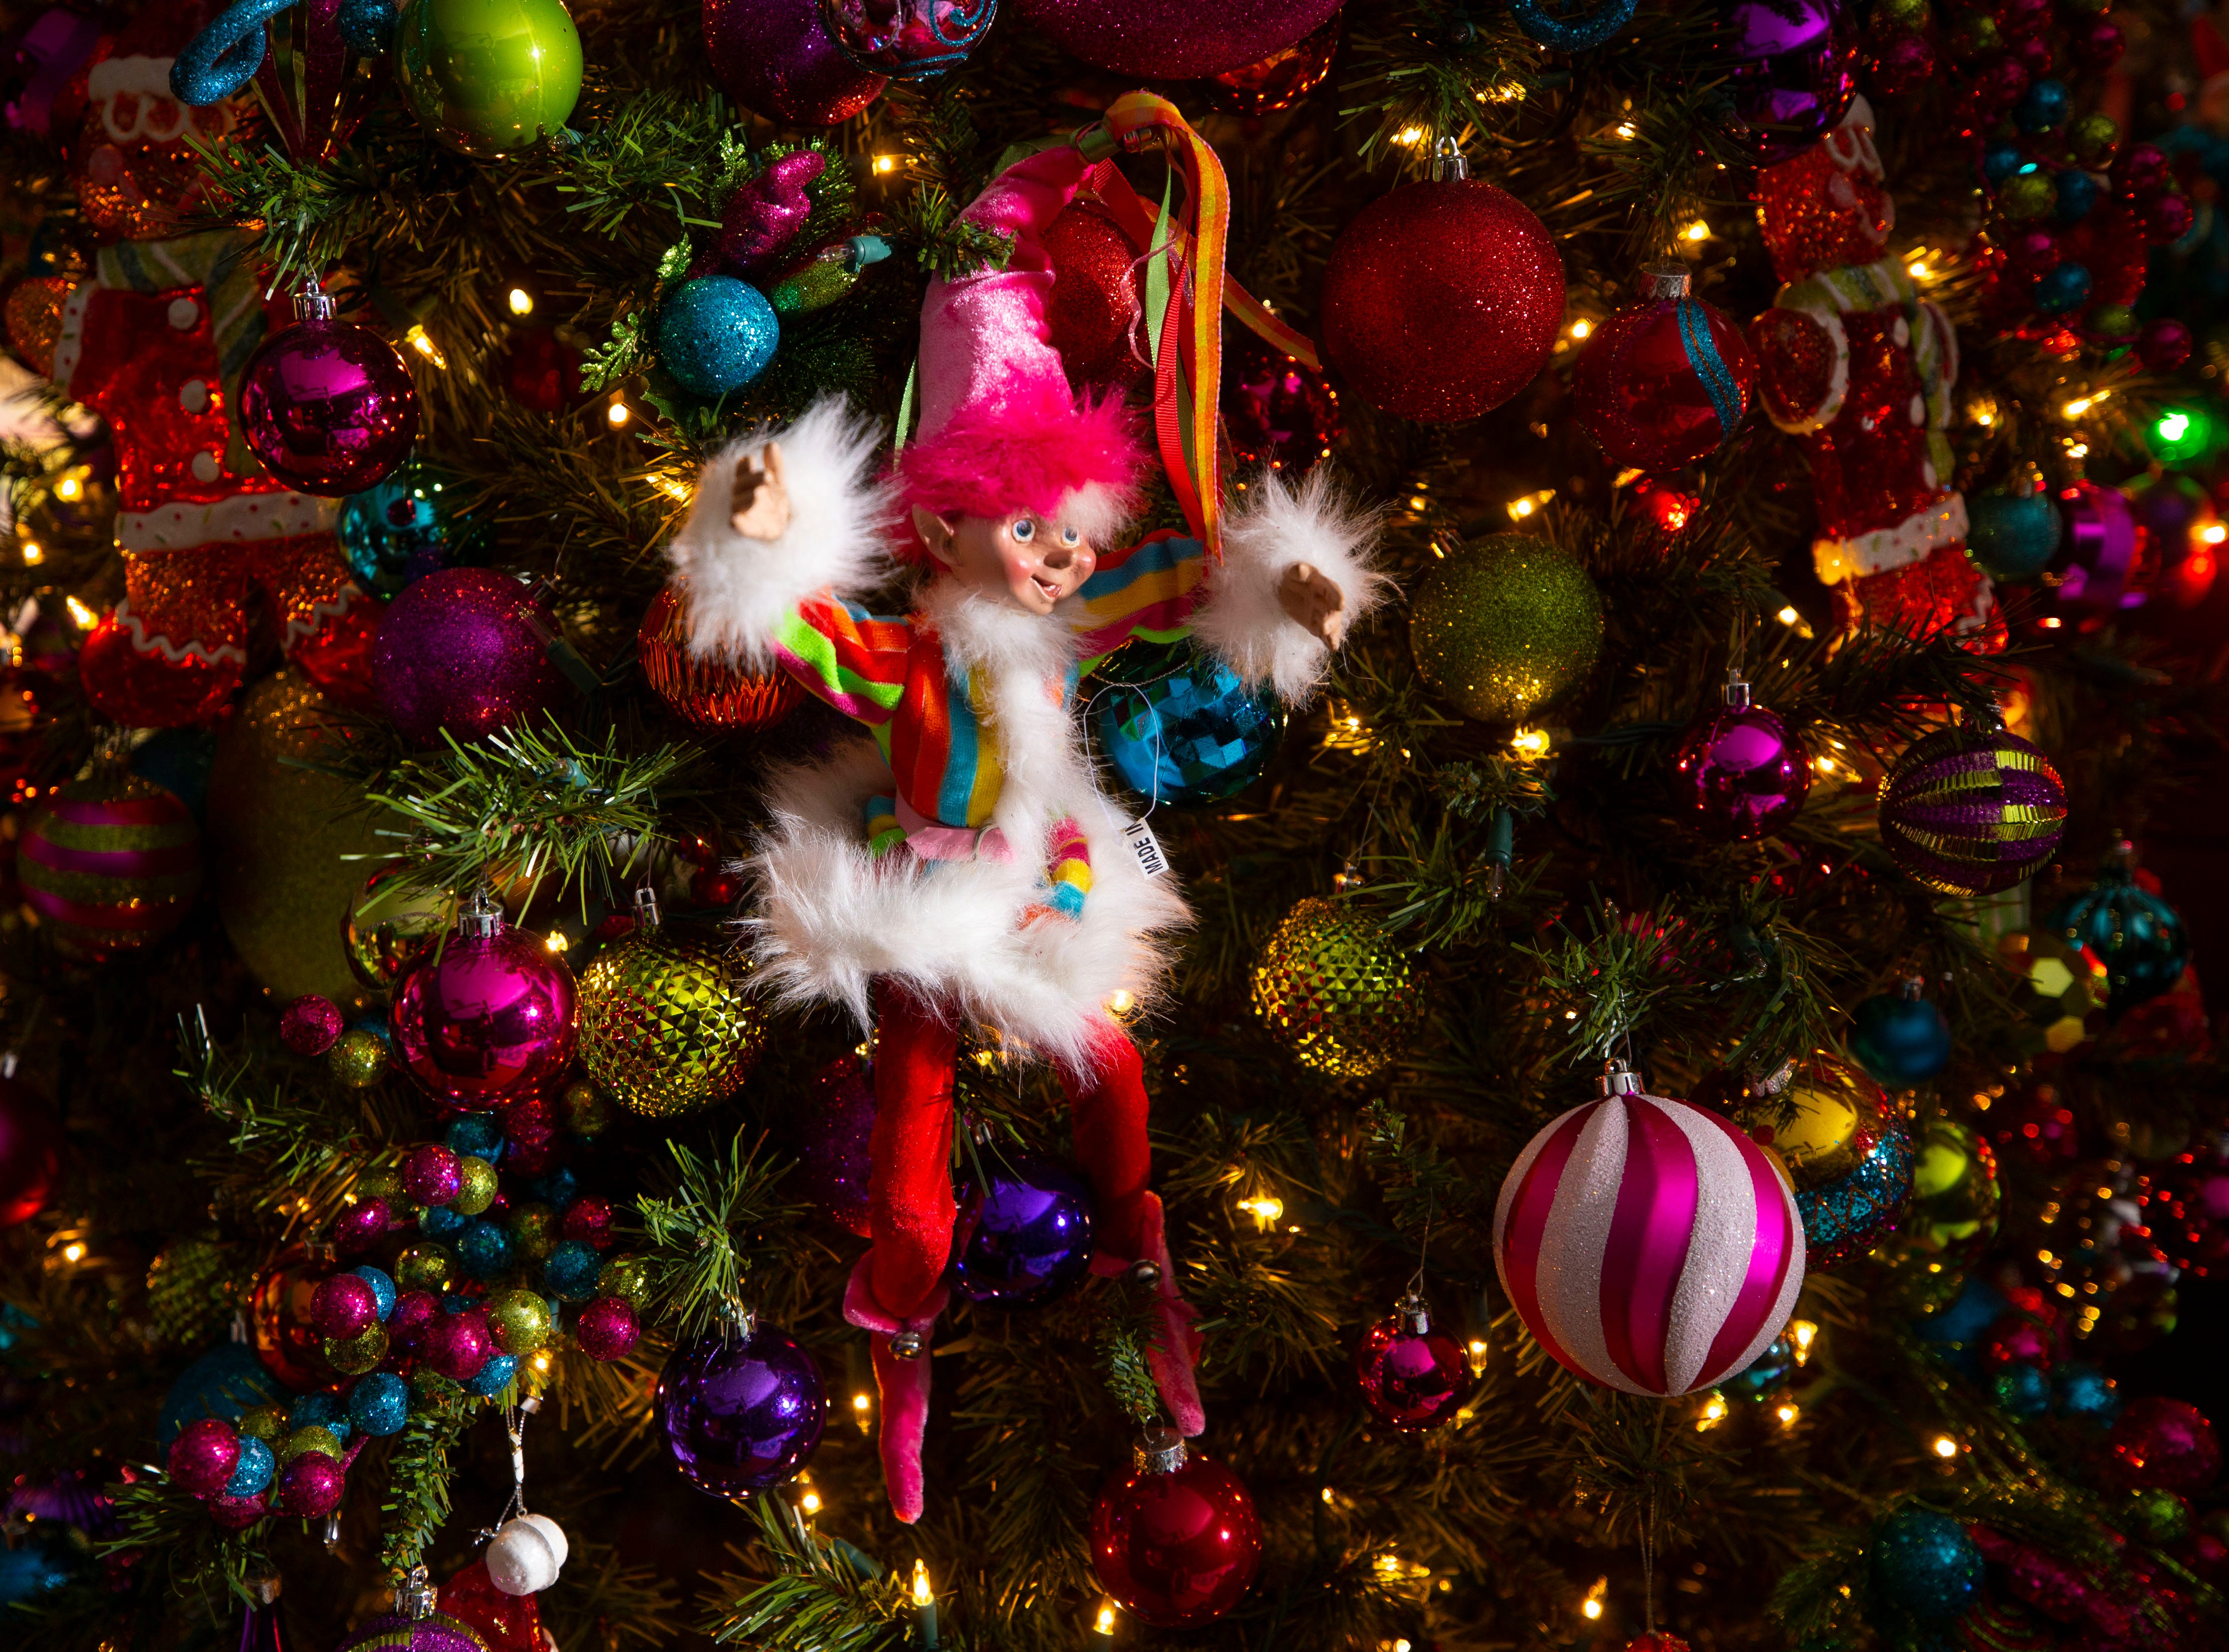 David Brown has more than 60,000 ornaments hung throughout the home.